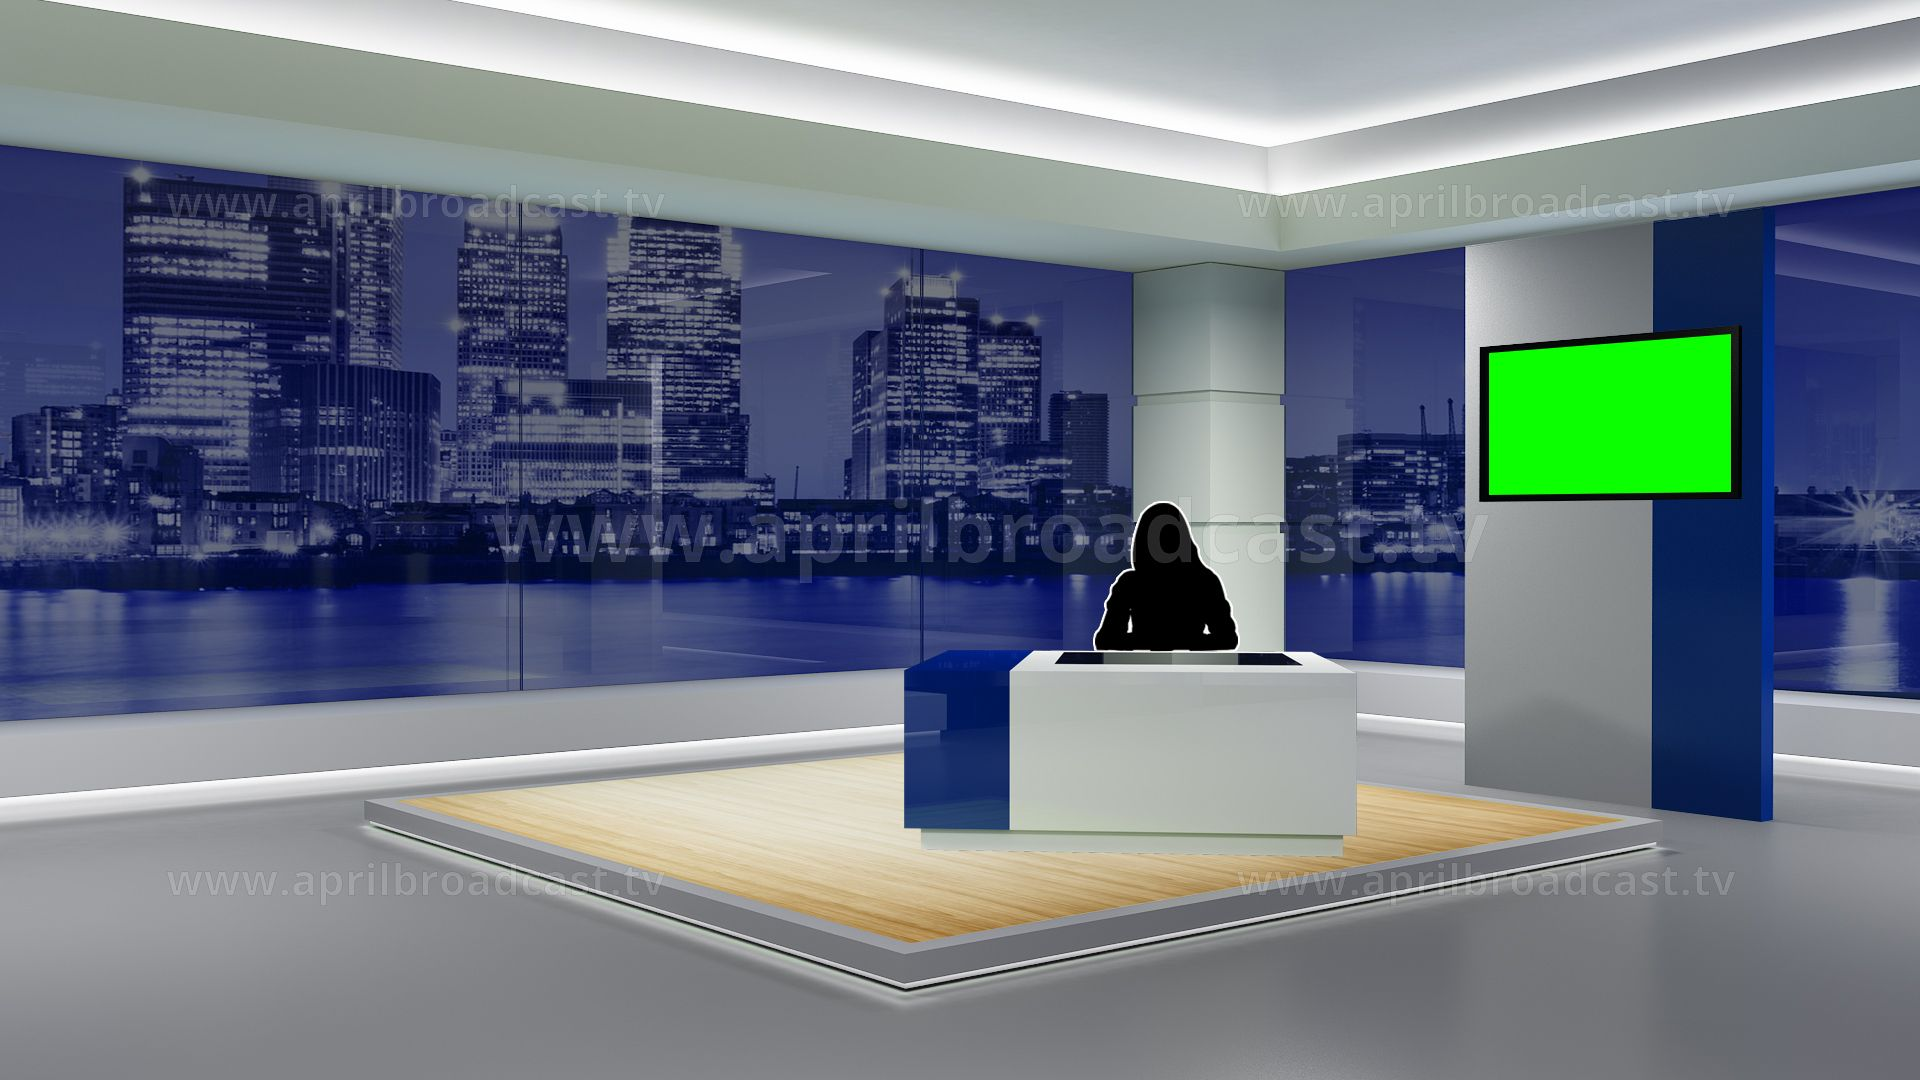 2d 3d Green Screen Background Best Suited For A Variety News Based Show Green Screen Backgrounds Greenscreen Flat Screen